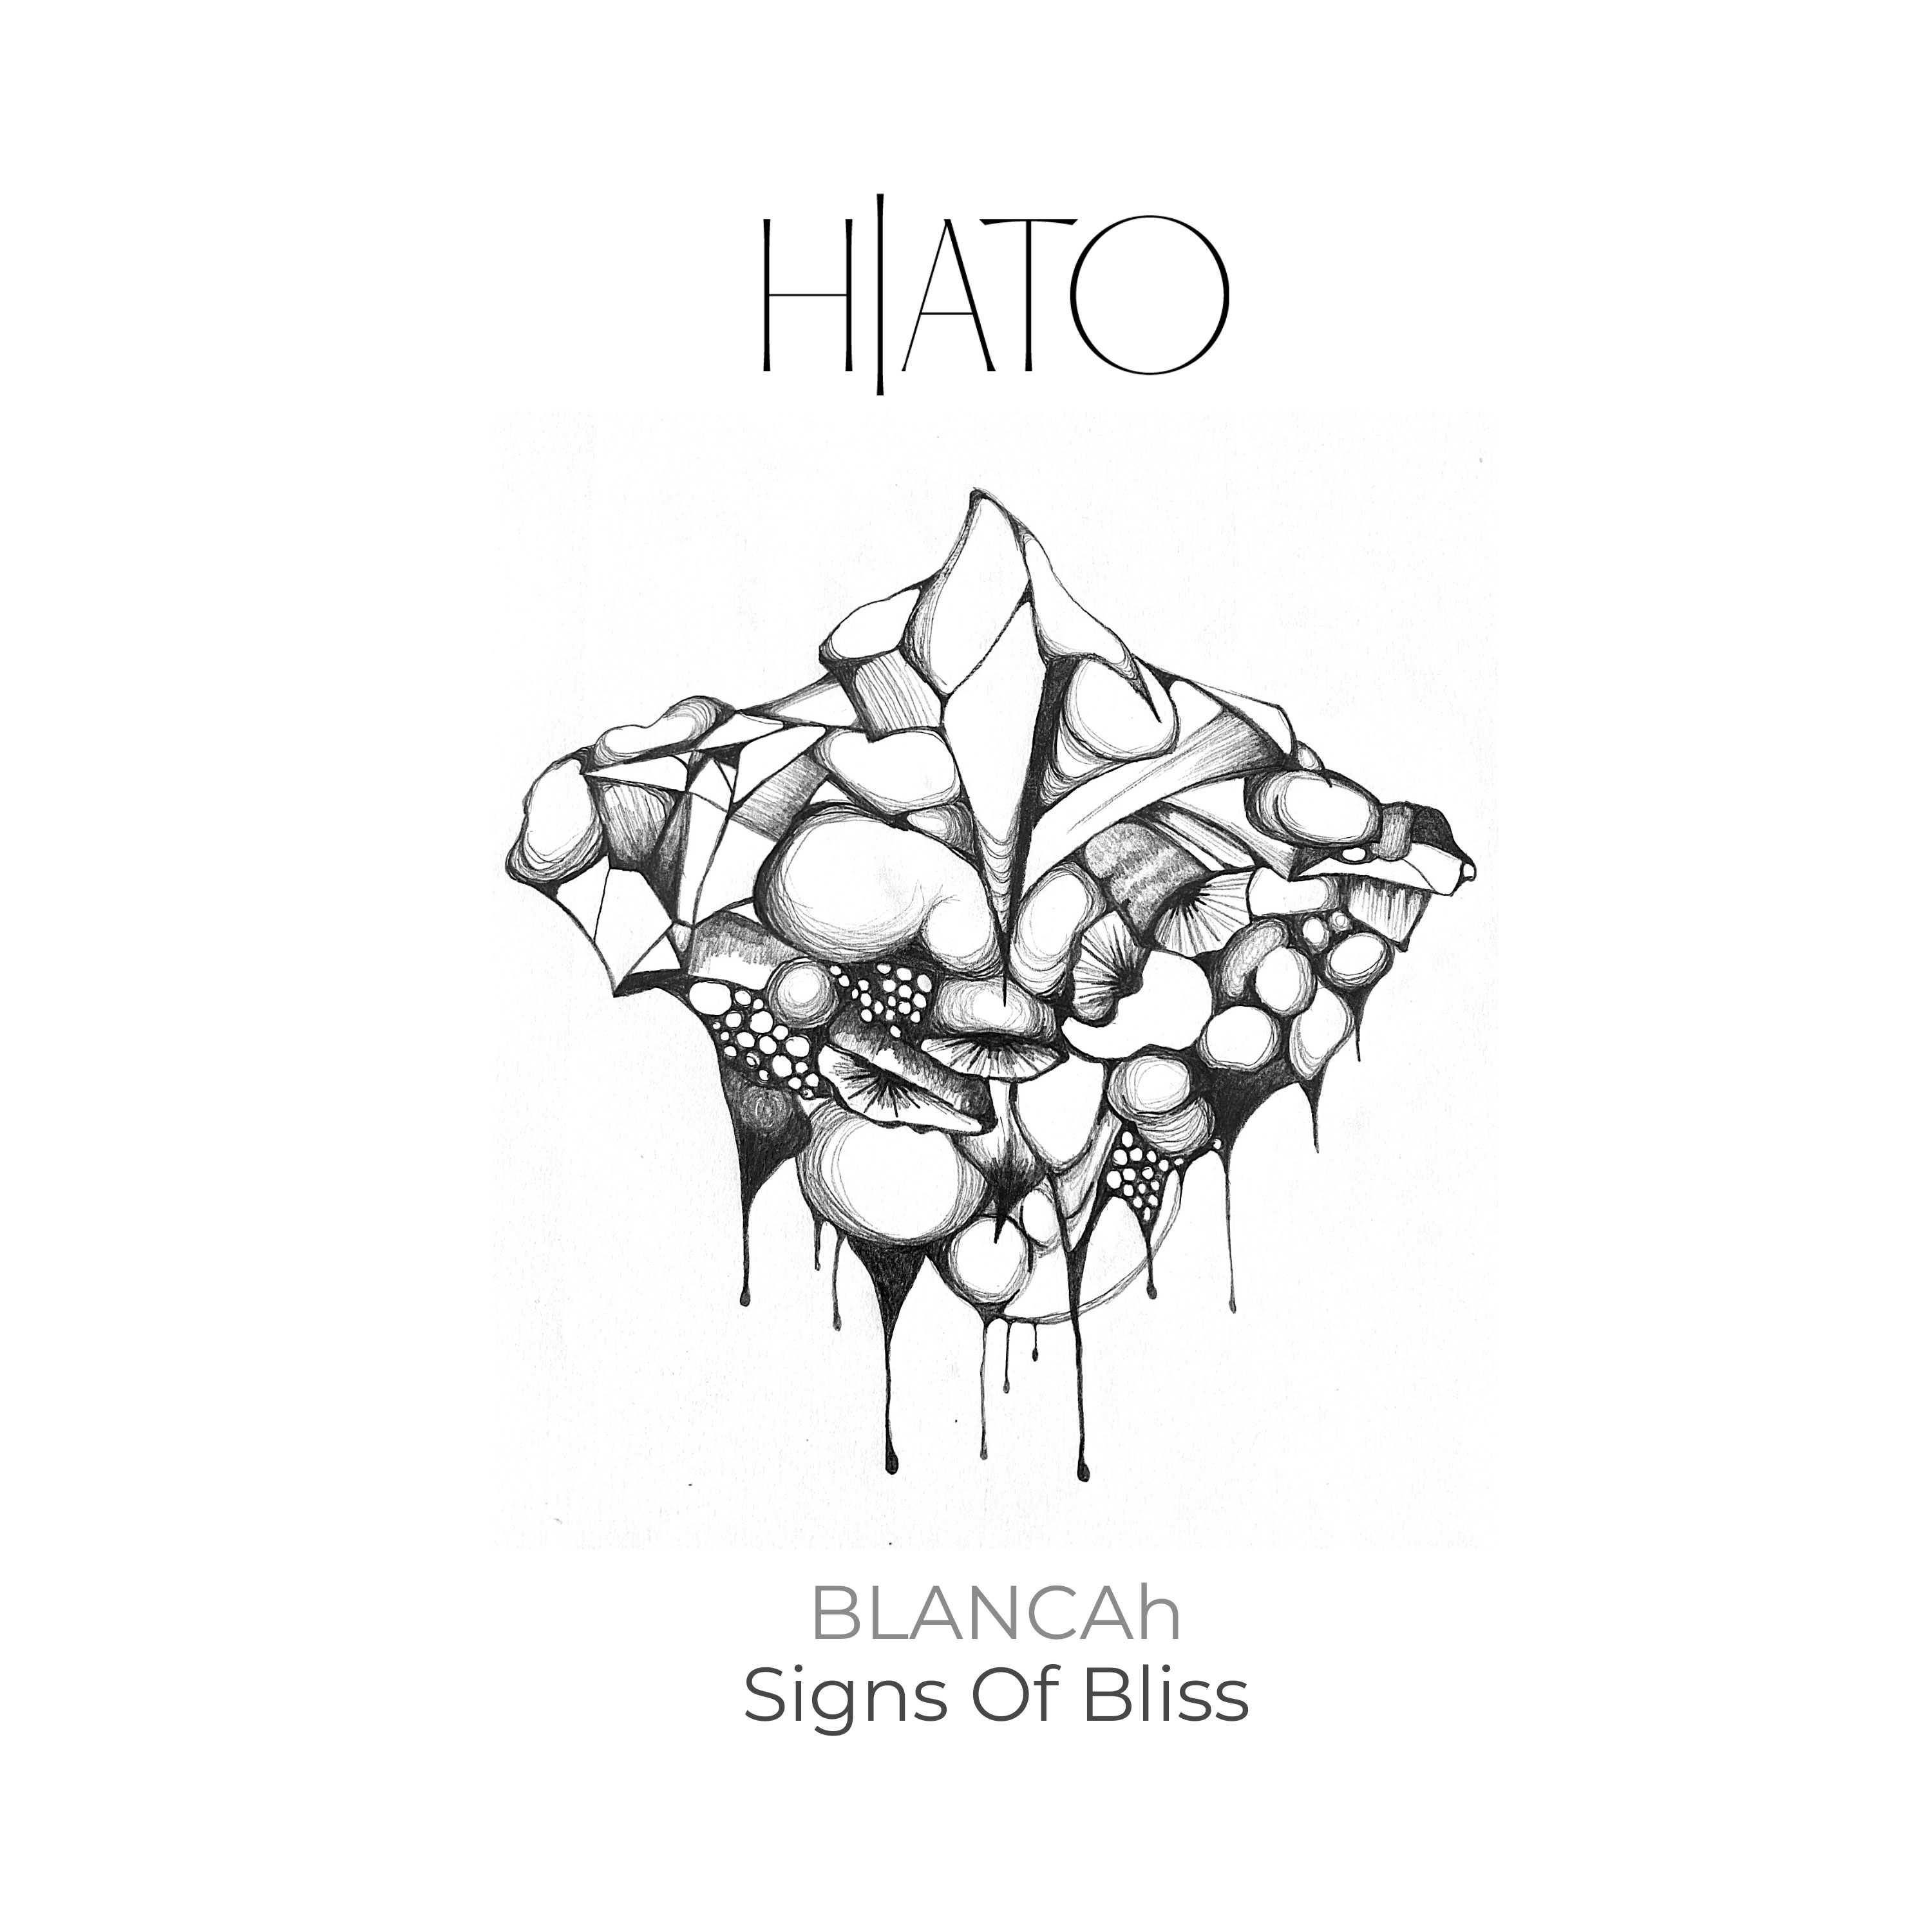 Signs of Bliss | HIATO Music Image